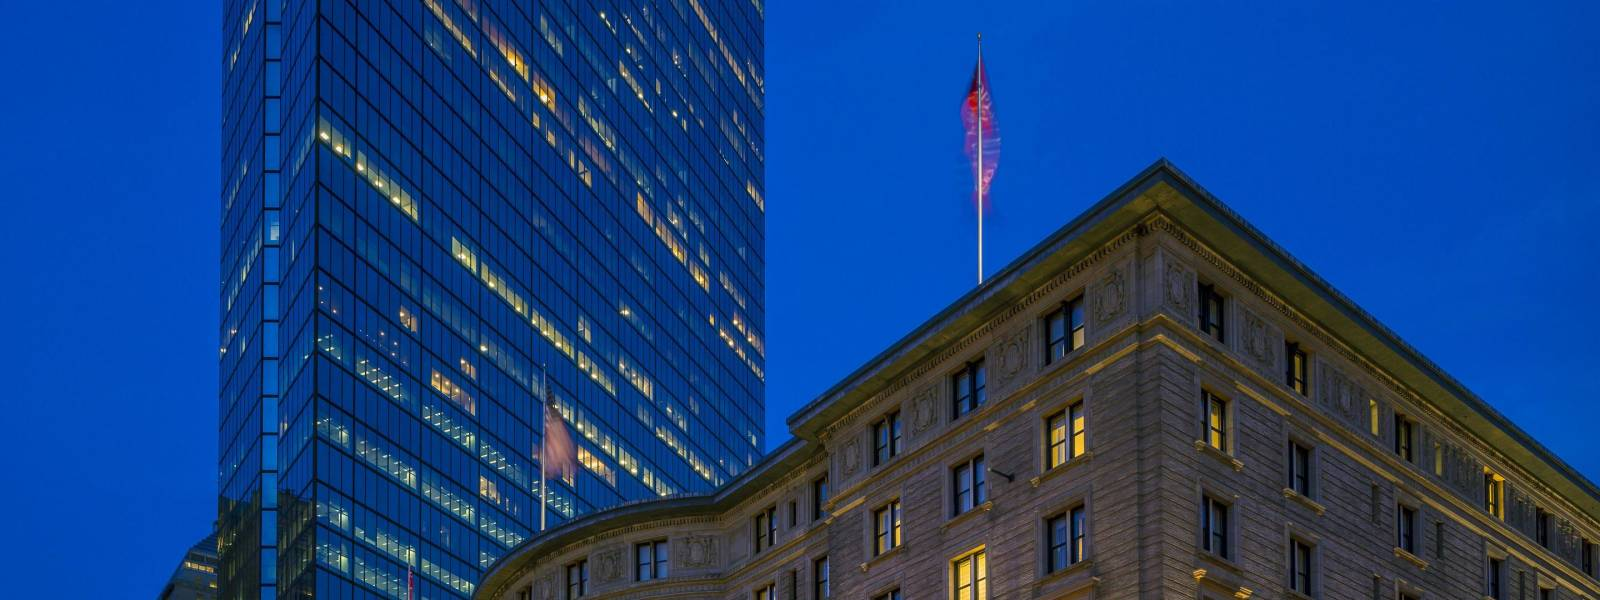 a lit up city at night with The Fairmont Copley Plaza Hotel in the background